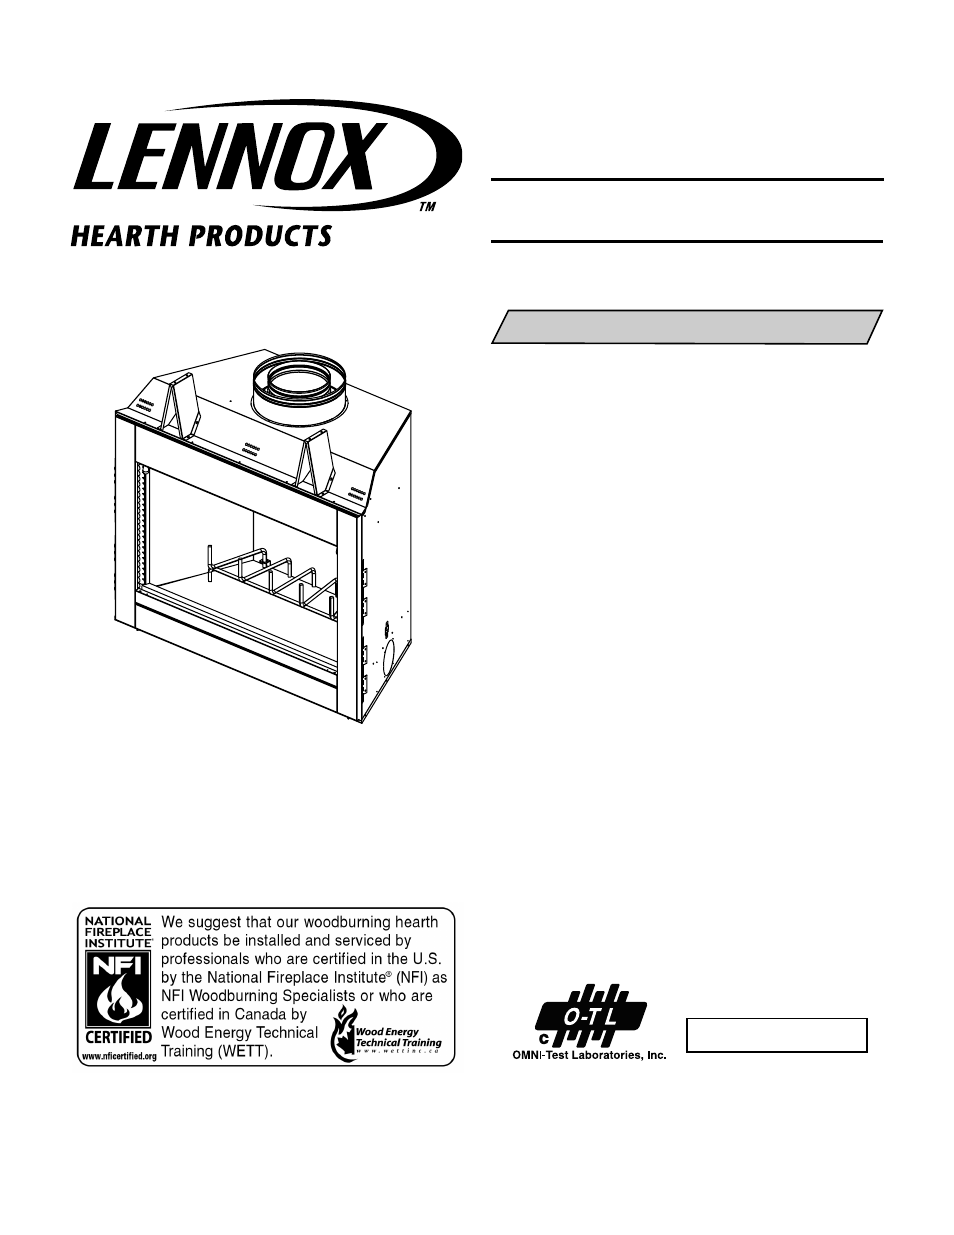 lennox hearth oasis series lso 43 user manual 20 pages